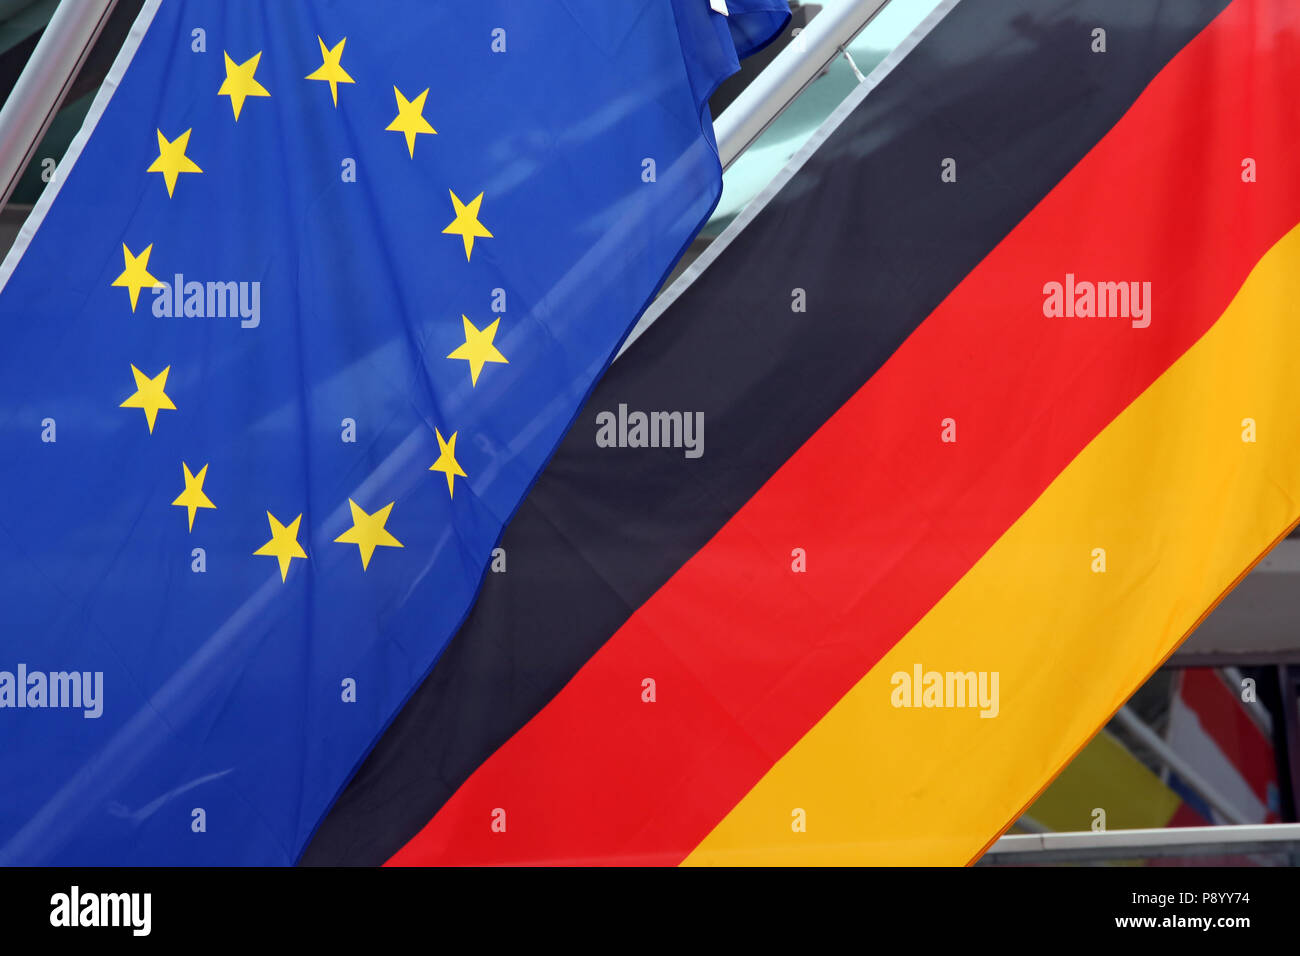 Reischach, Italy, flag of the European Union and national flag of the Federal Republic of Germany - Stock Image